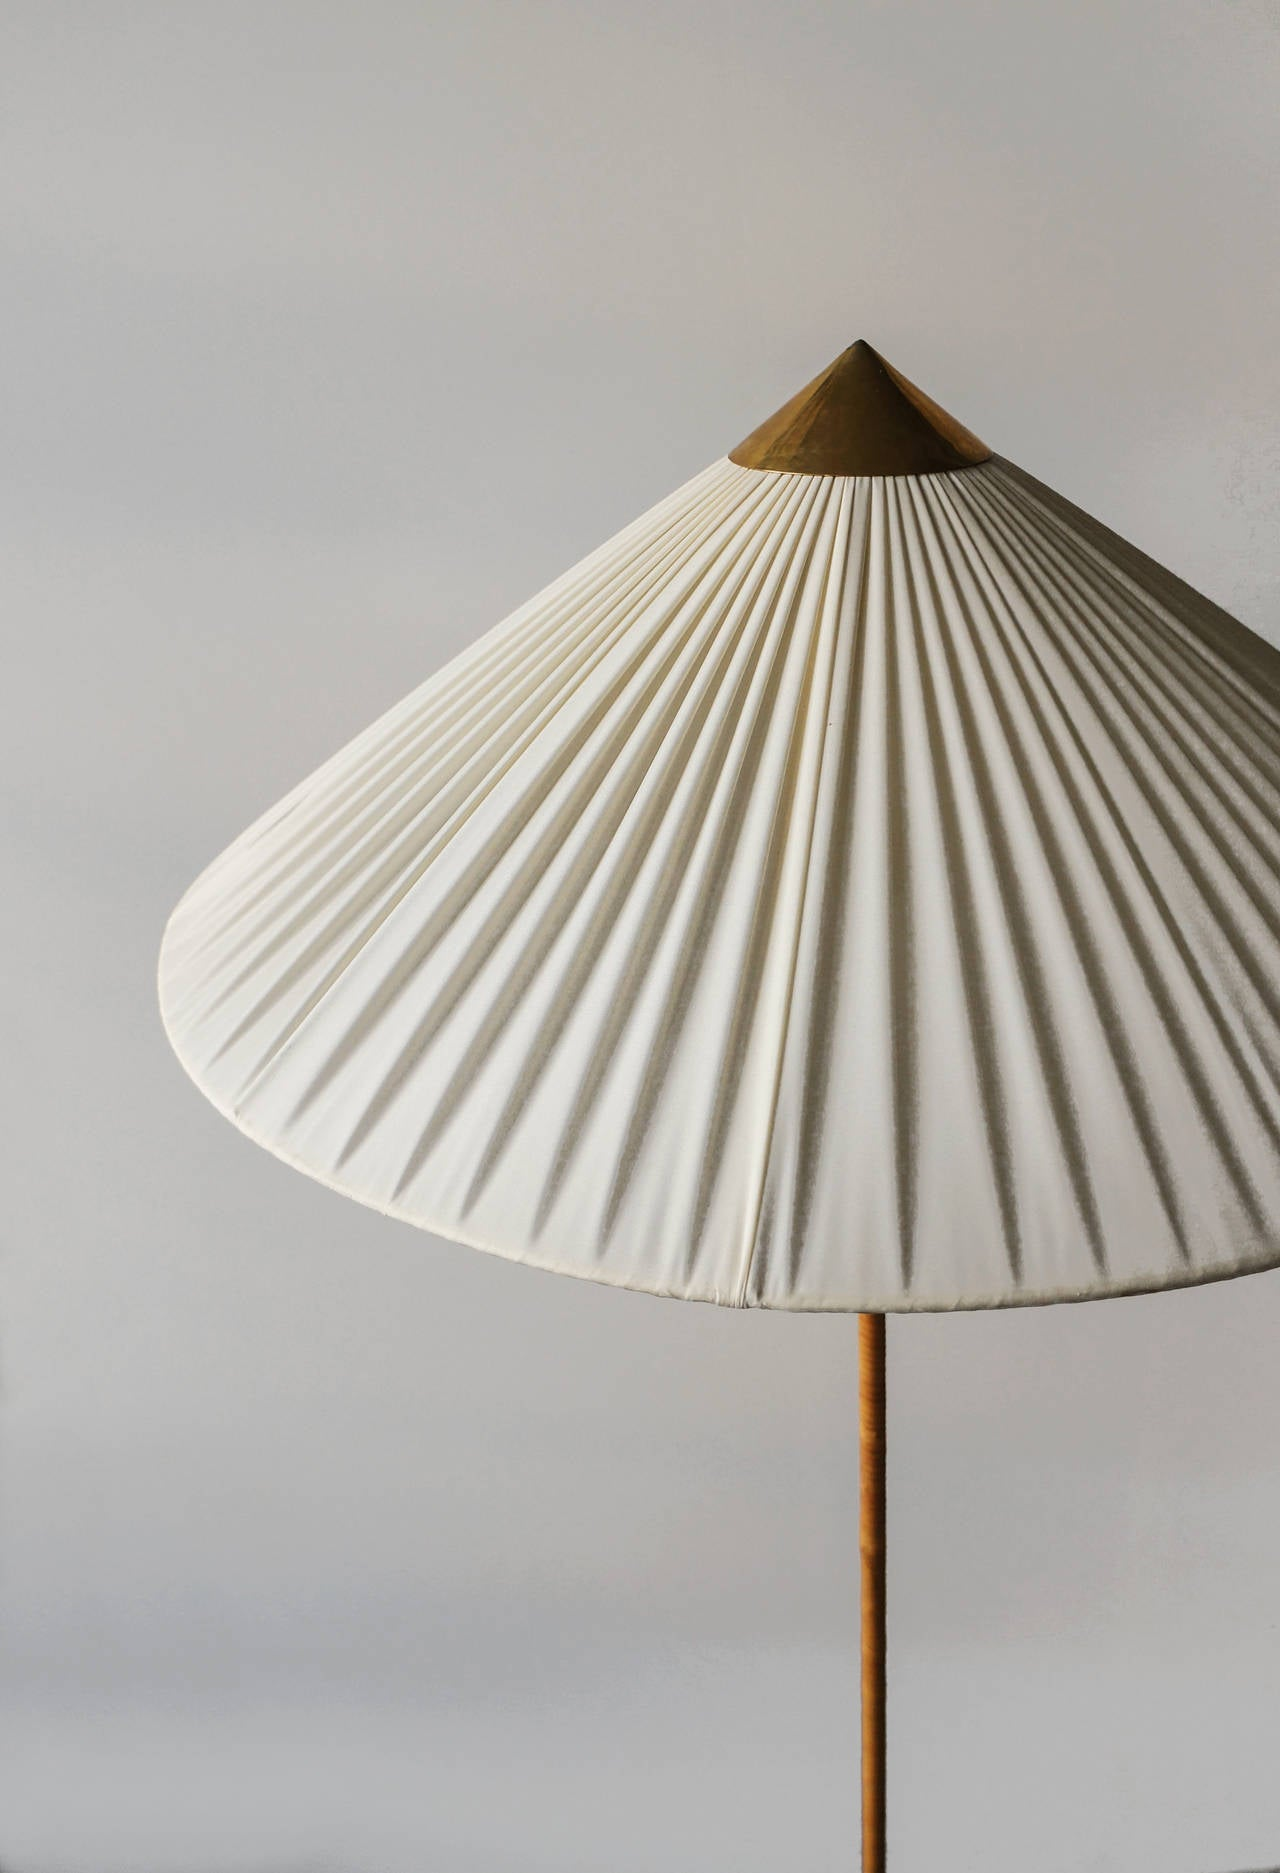 Scandinavian Modern Paavo Tynell Floor Lamp, Model 9602, 1940s